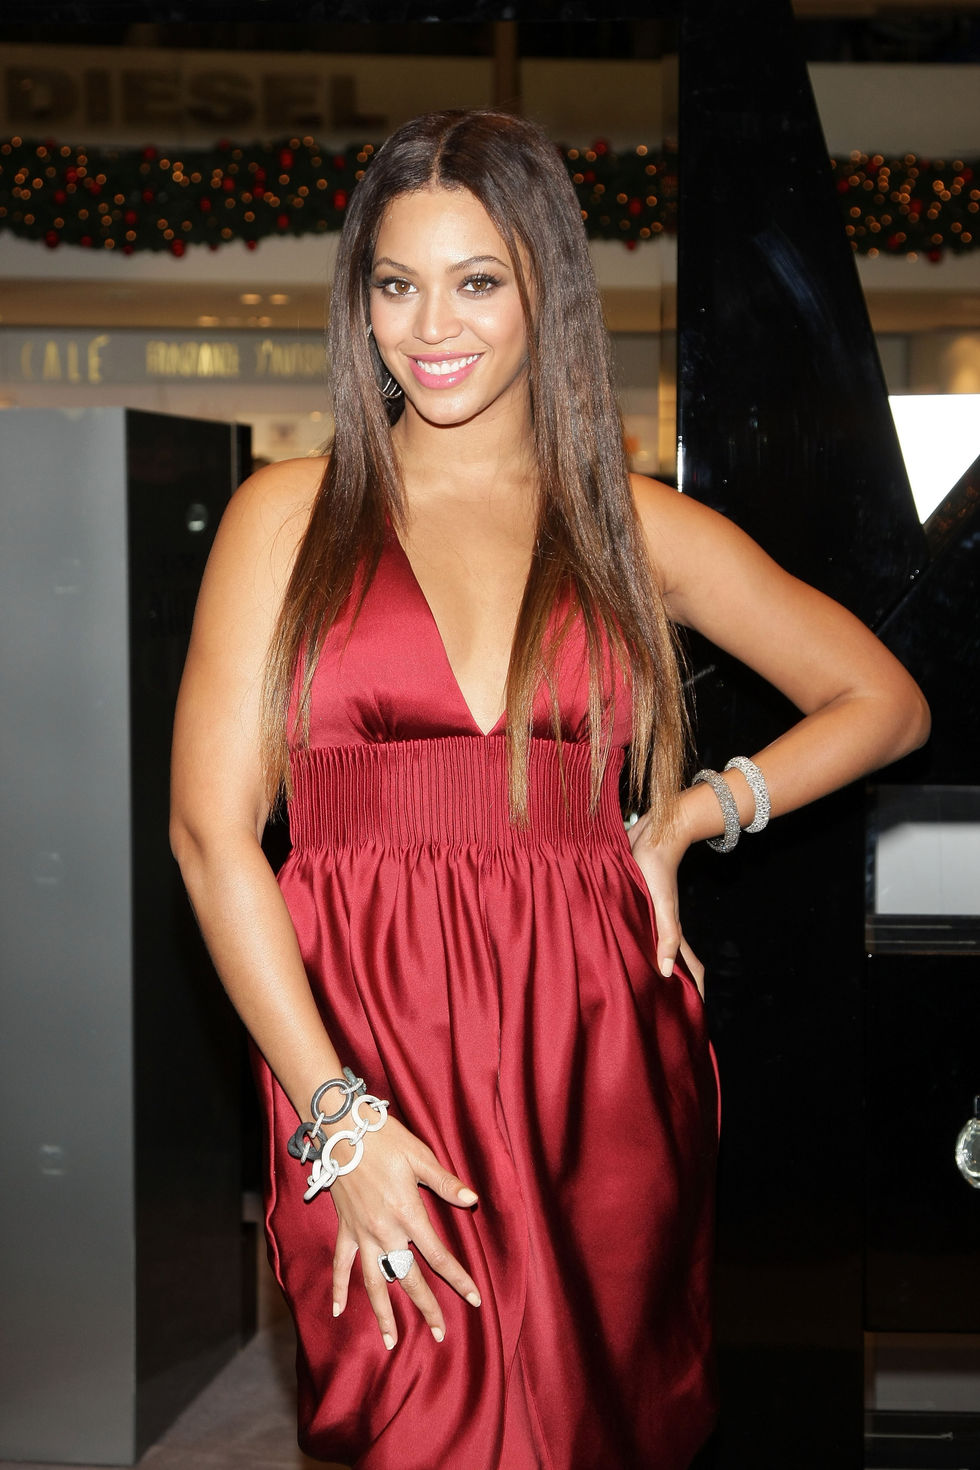 beyonce-at-the-rinascente-store-in-milan-01